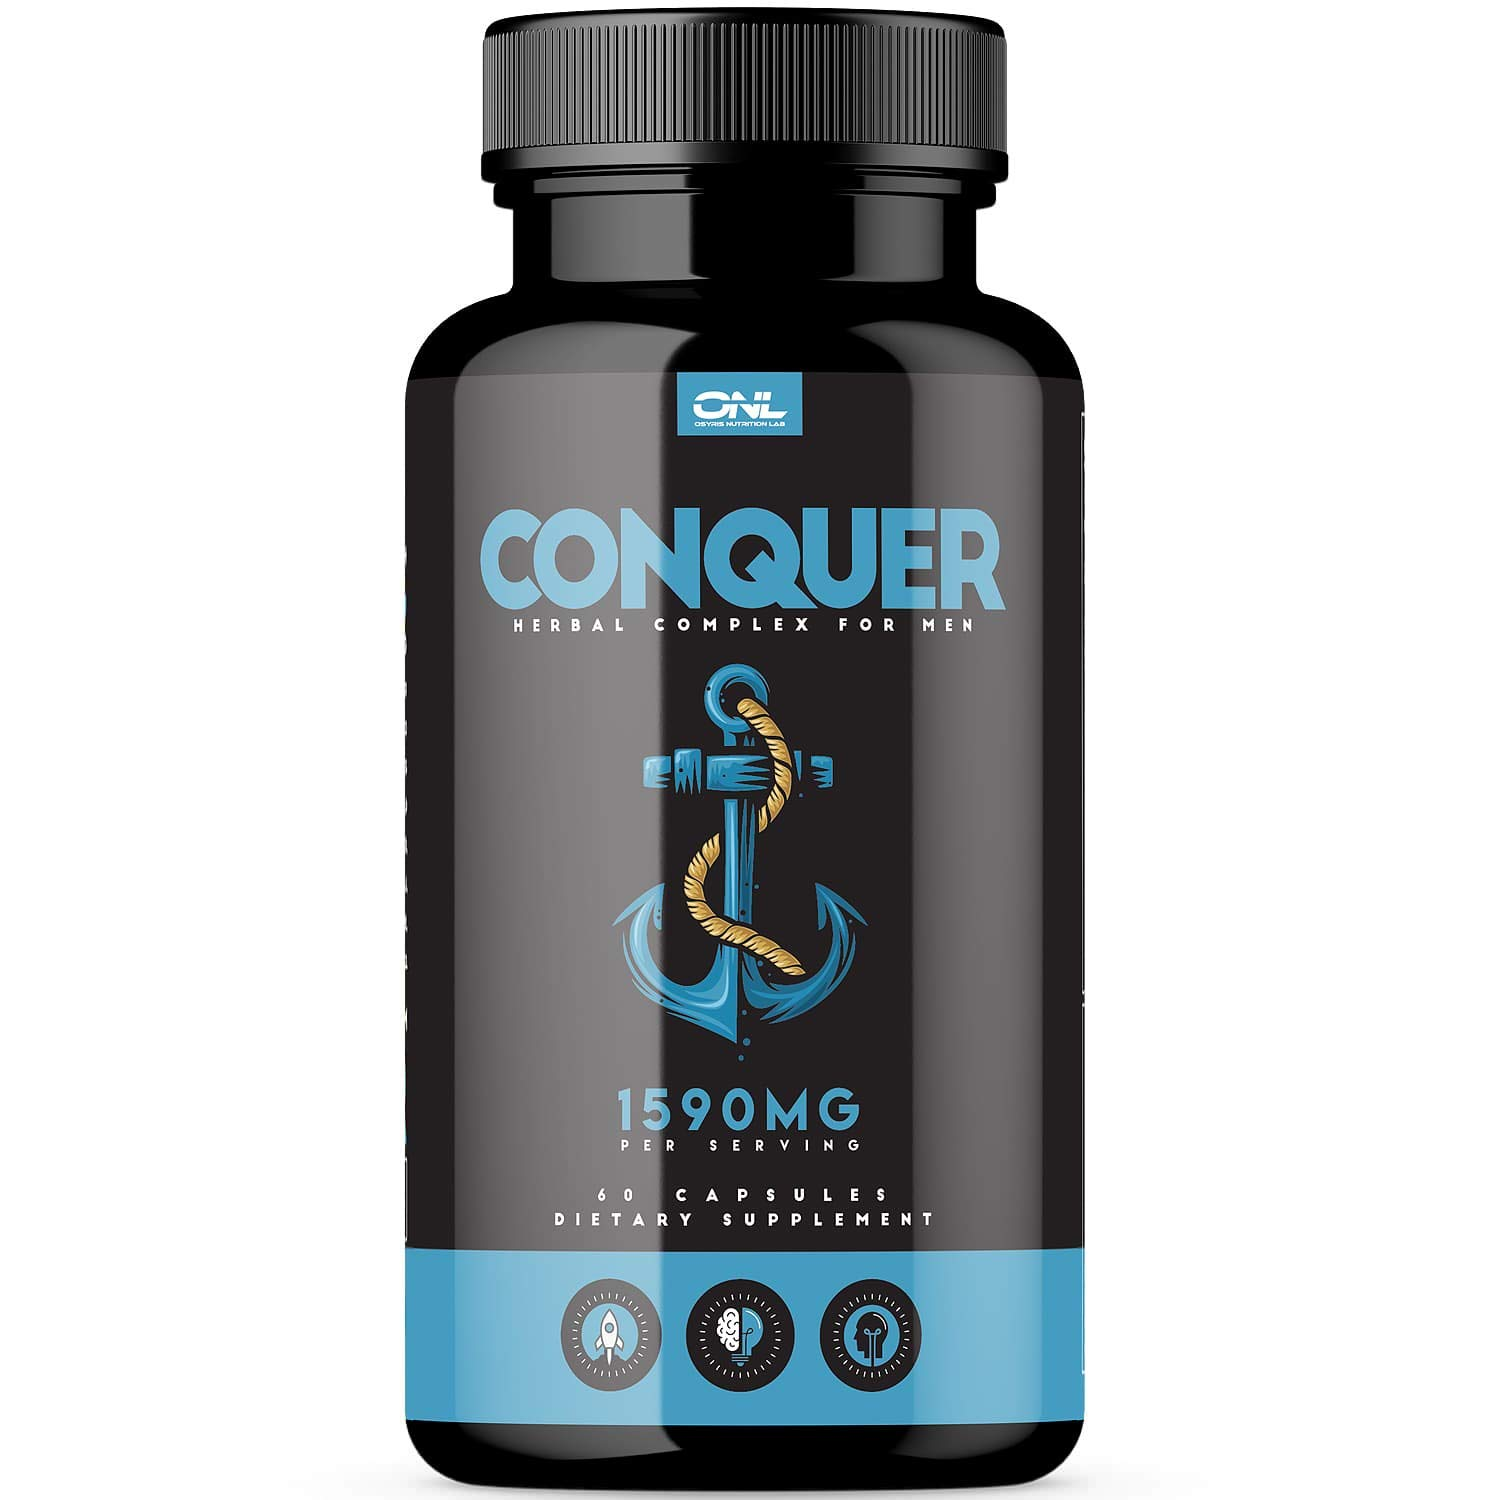 Conquer | #1 Premium Fertility Supplement for Men (60 Capsules) - Support Sperm Count, Motility, Volume - All Natural Energy Booster - Healthy Herbal Complex - 1 Month Supply